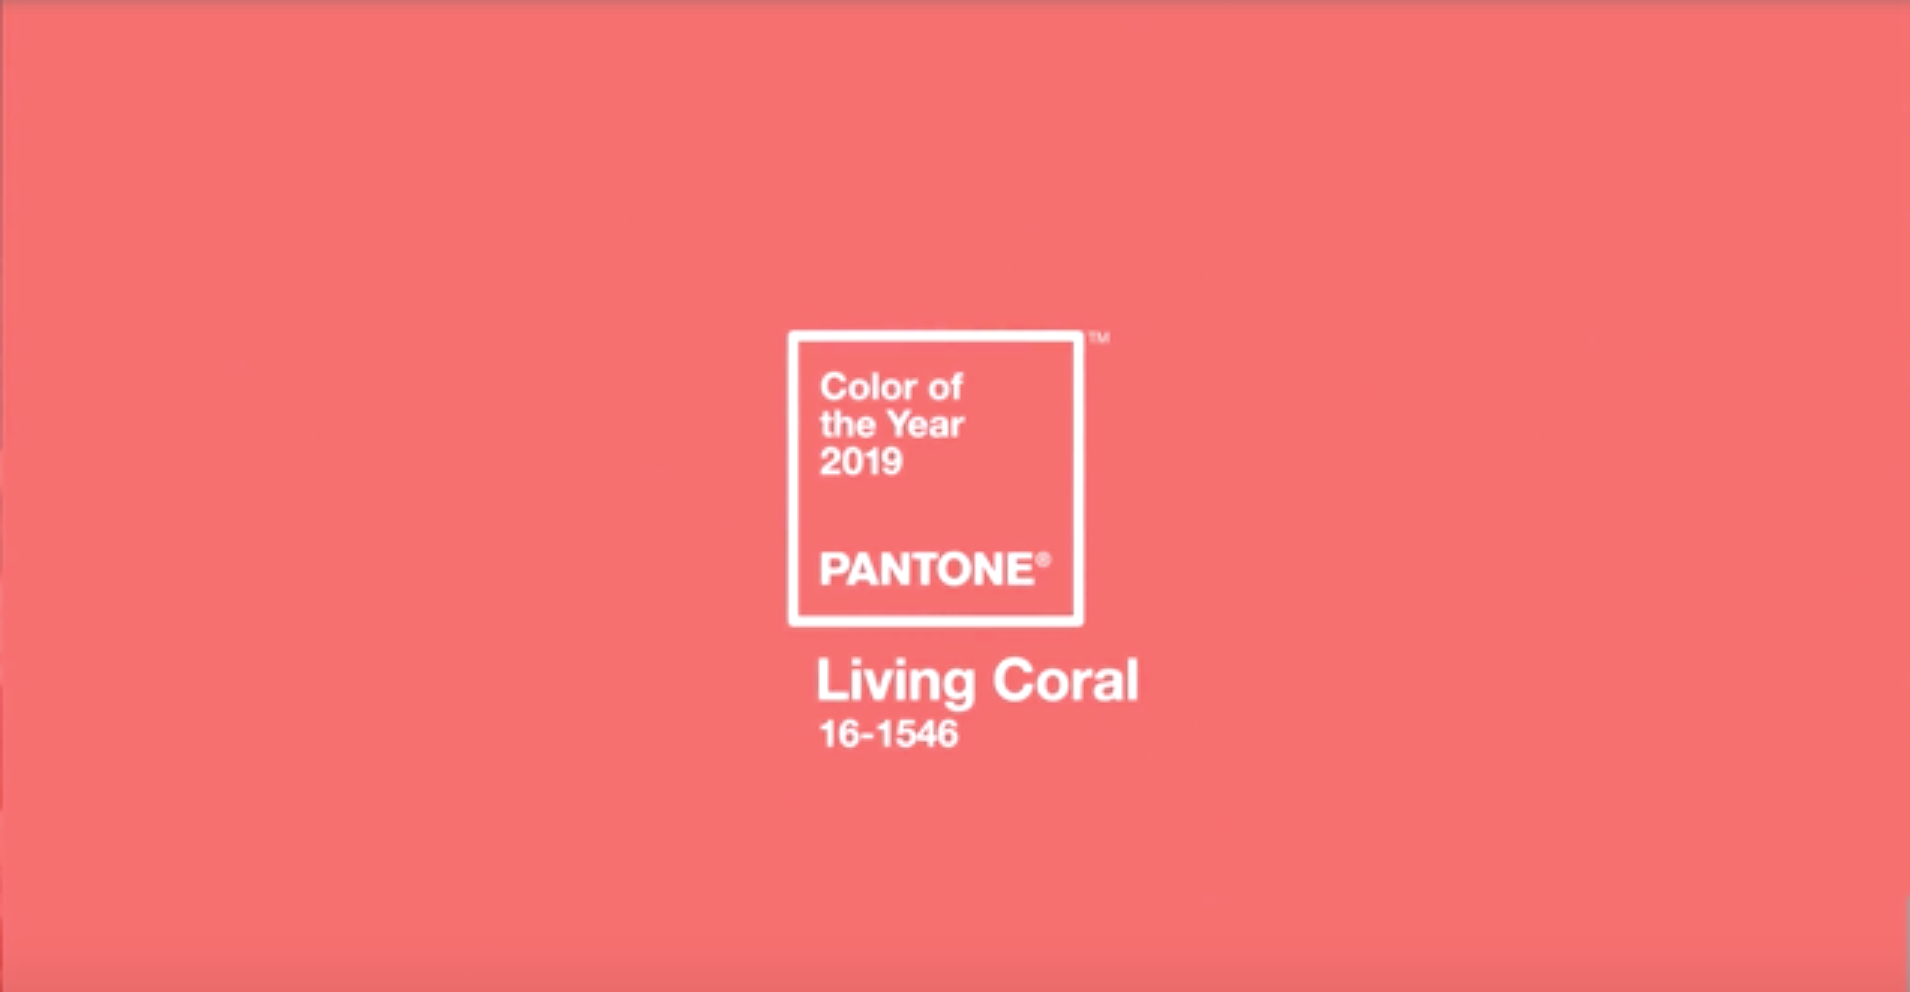 Living Coral: Pantone's Colour of the Year 2019